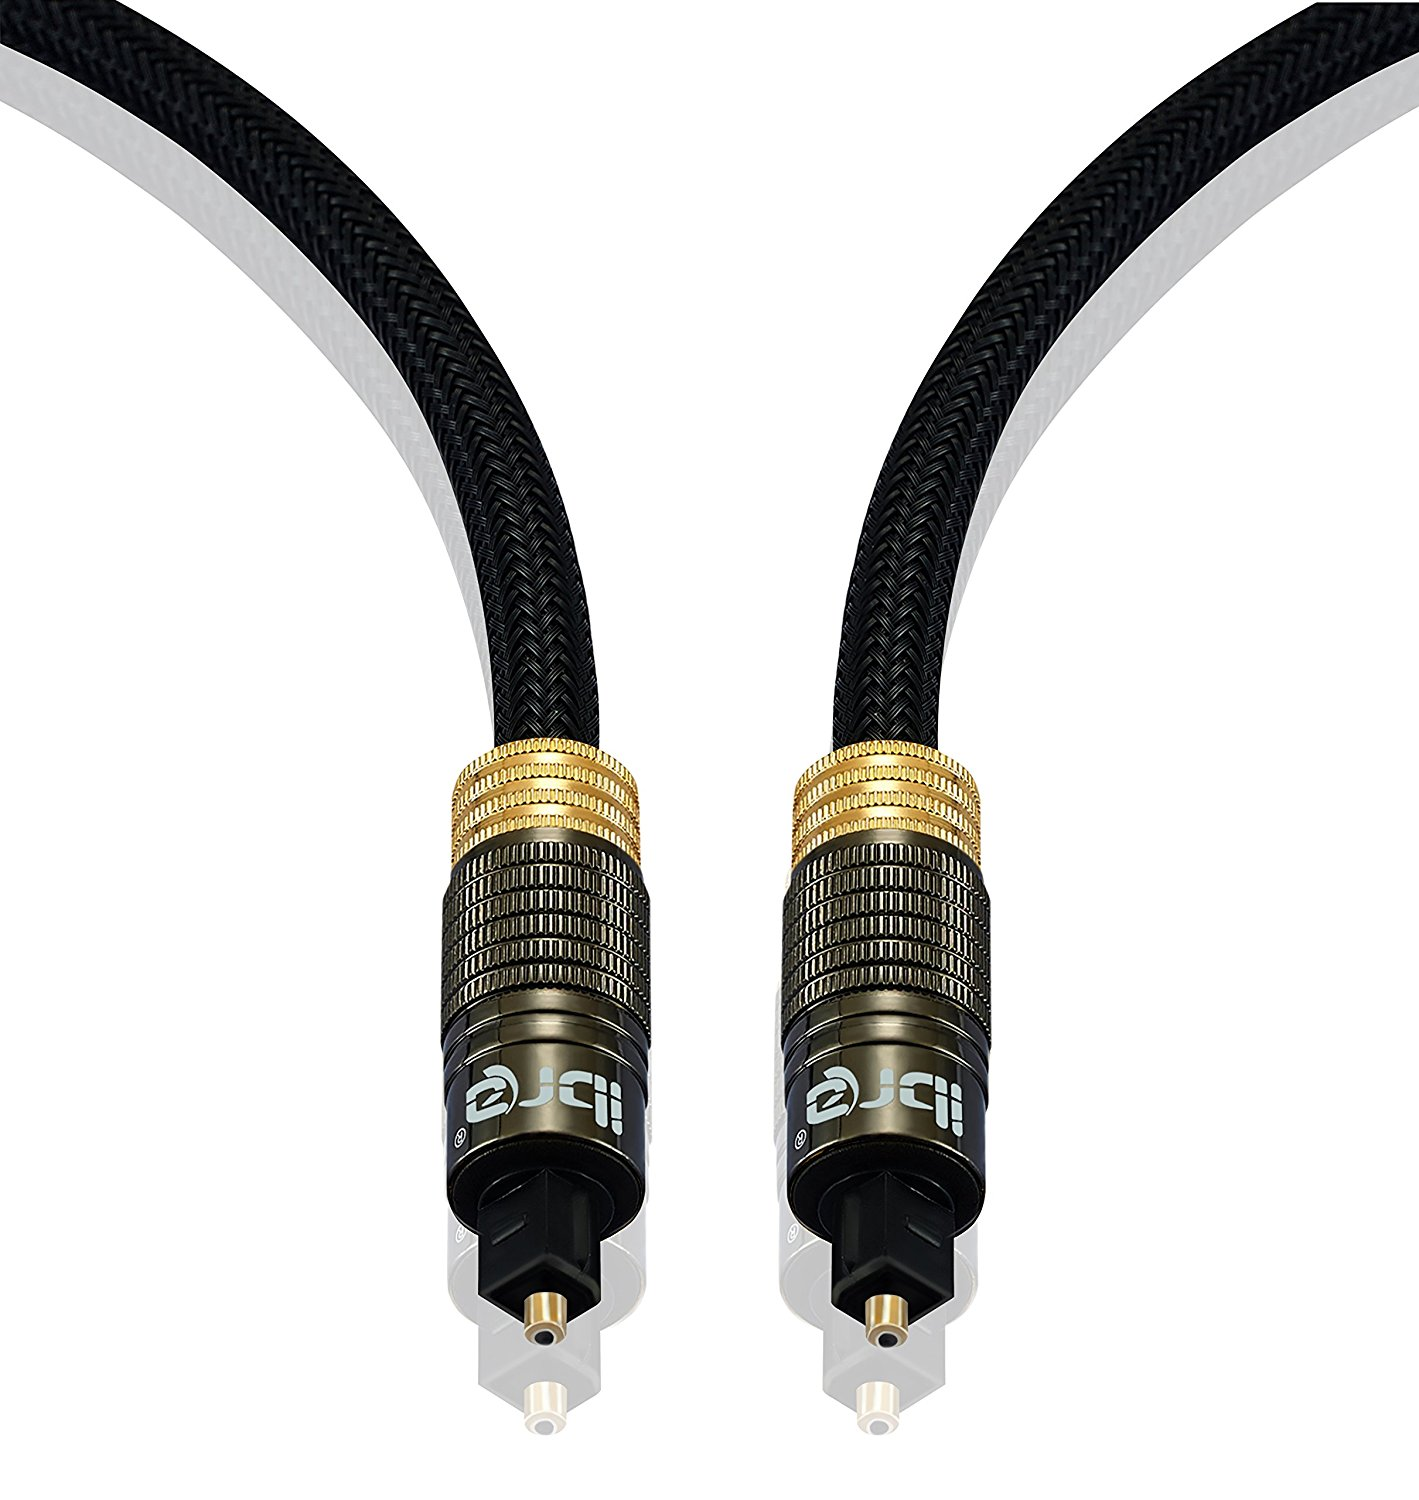 IBRA Muzil Gold 1.5M - Digital Optical Cable | Toslink / Audio Cable | Fibre Optic Cable | Suitable for PS3, Sky, Sky HD, LCD, LED, Plasma, Blu-ray, AV Amps